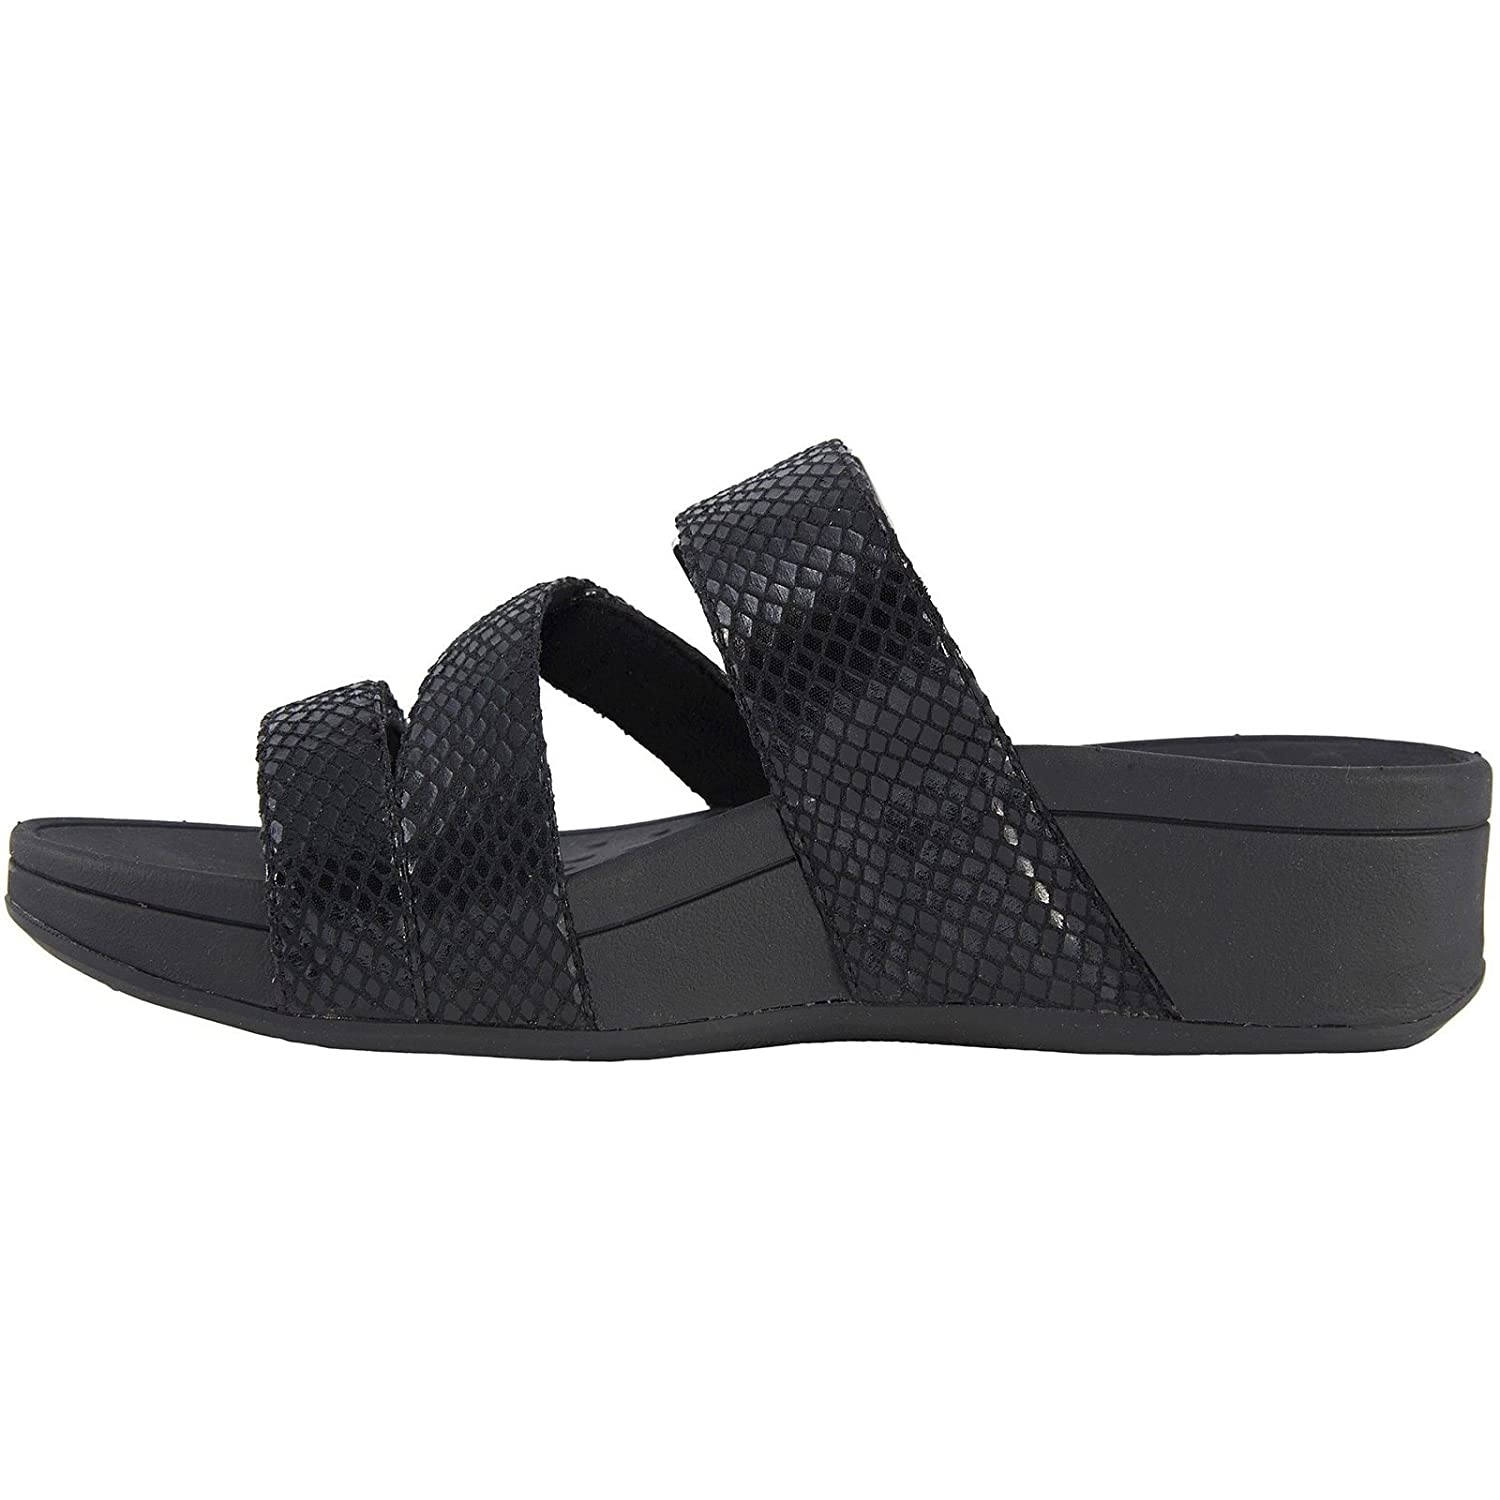 VIONIC Damenschuhe Pacific Rio Synthetic Synthetic Rio Sandales c5caae